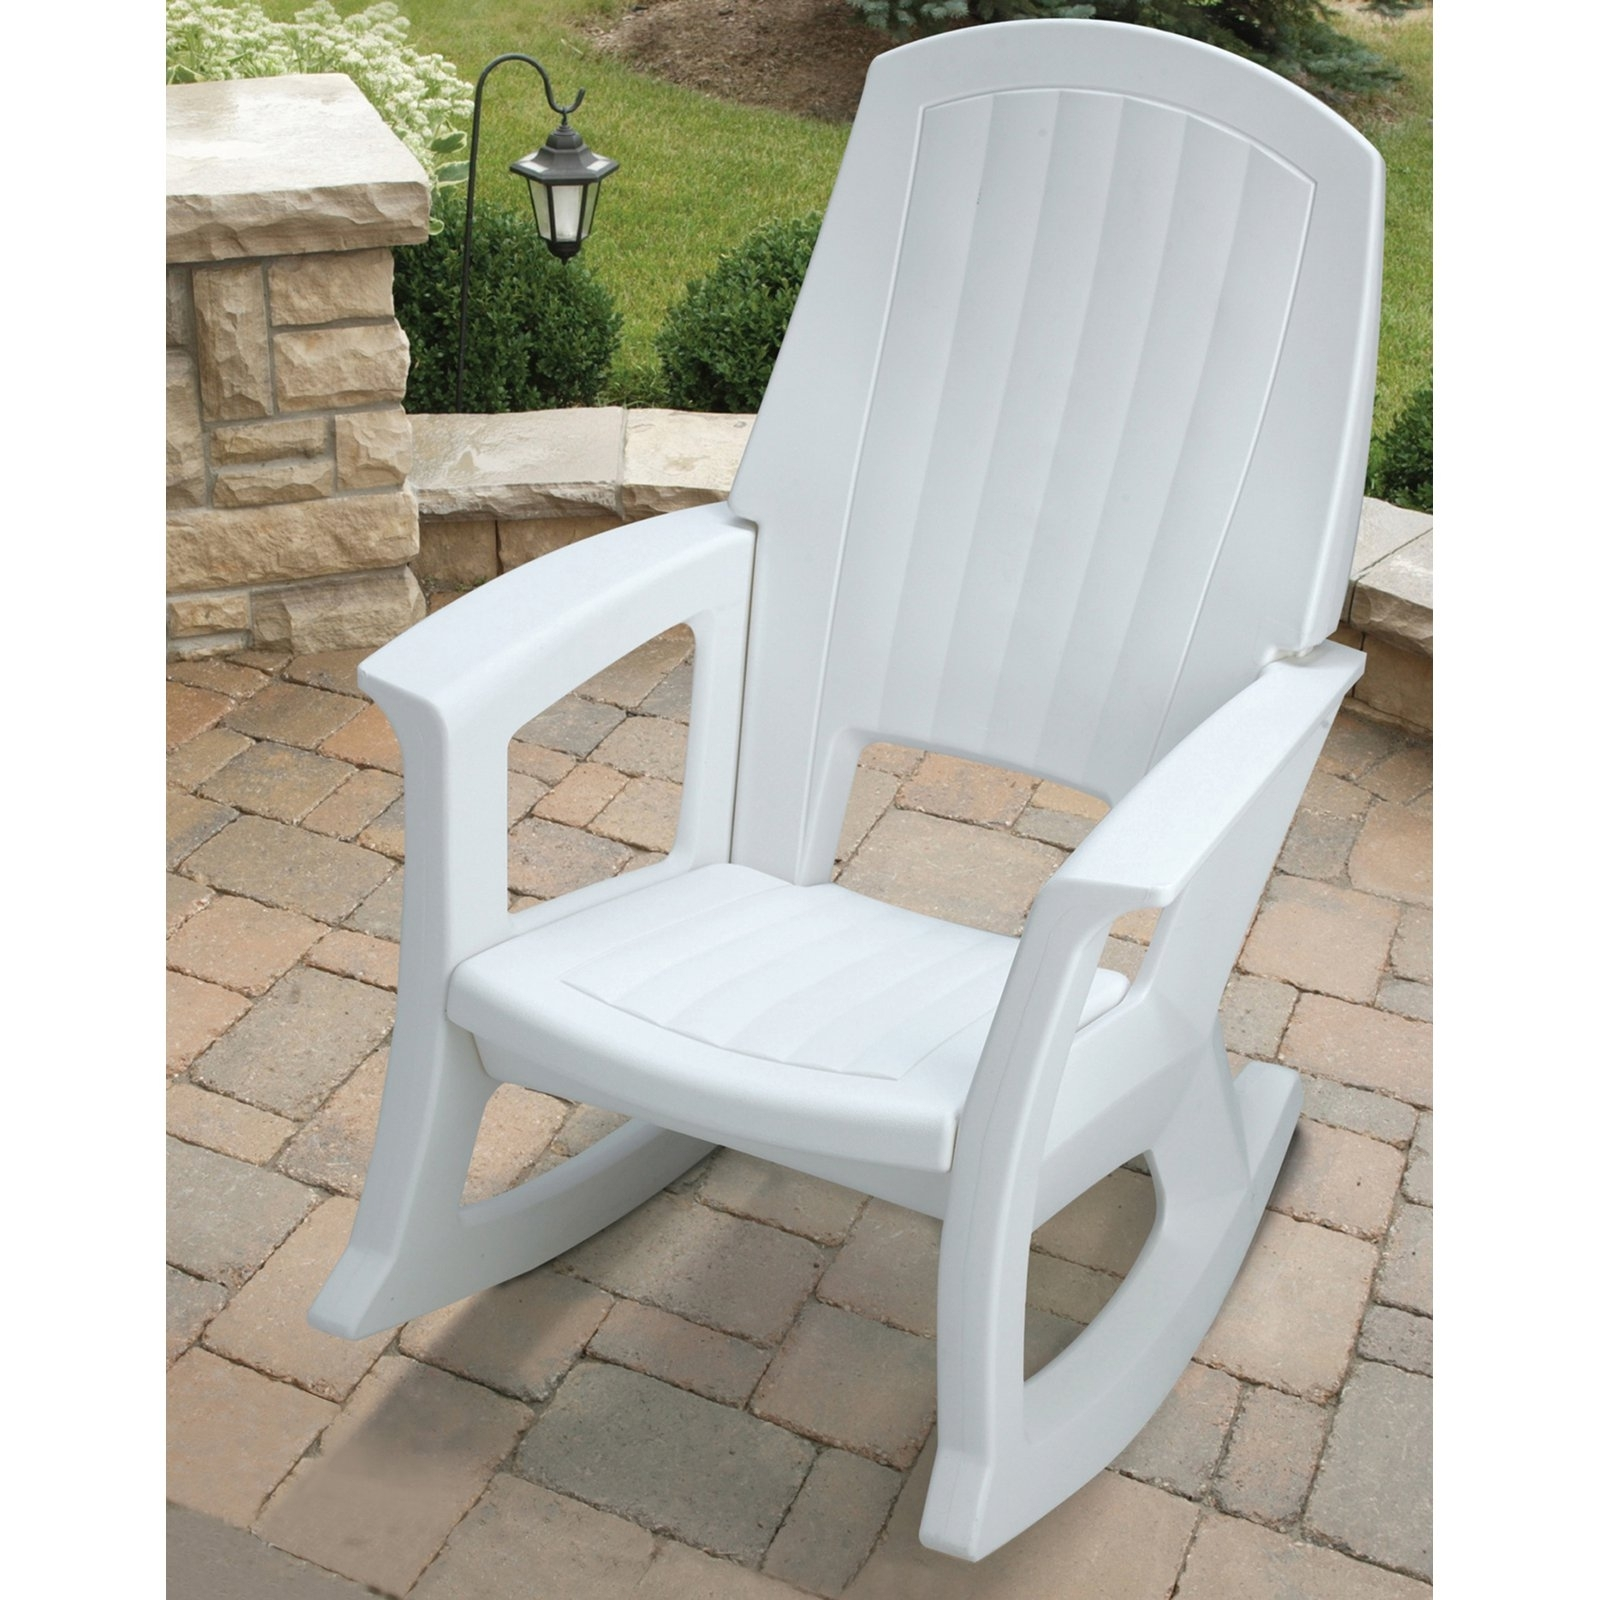 Semco Recycled Plastic Rocking Chair – Walmart For Rocking Chairs For Outdoors (#14 of 15)